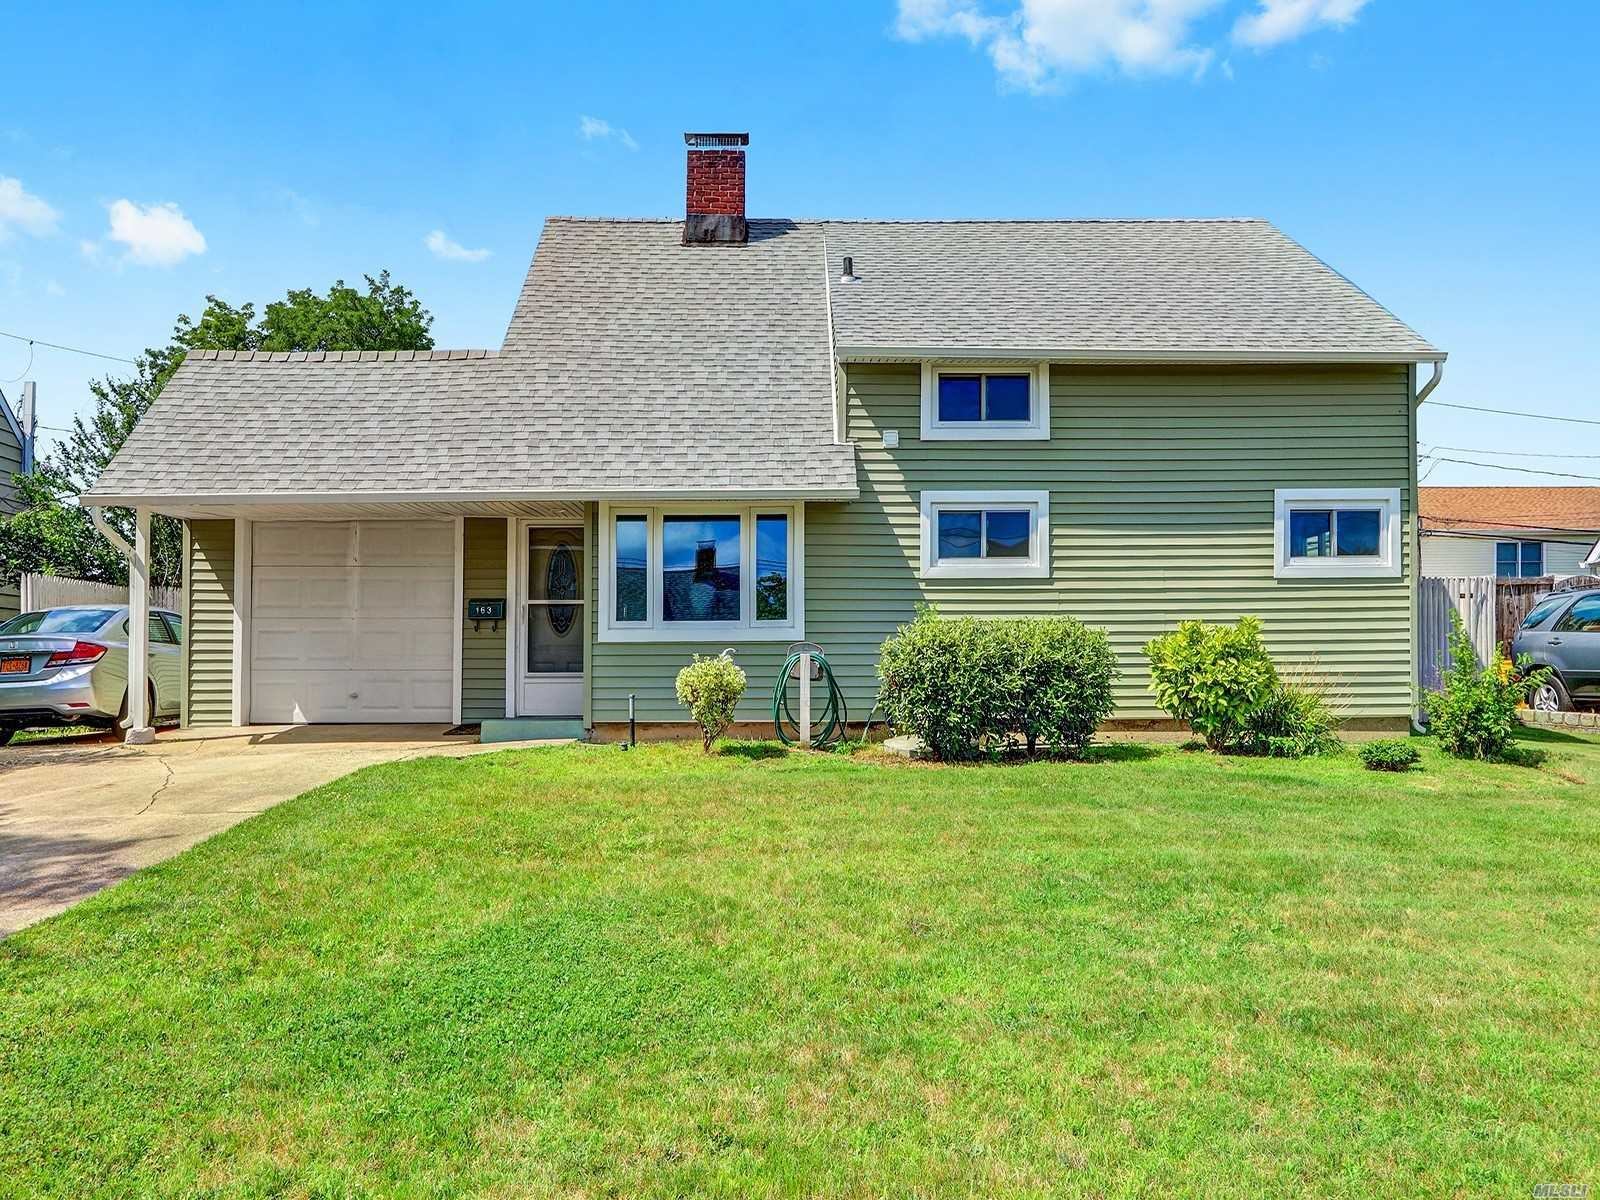 163 Spindle Road, Hicksville, NY 11801 - MLS#: 3234006